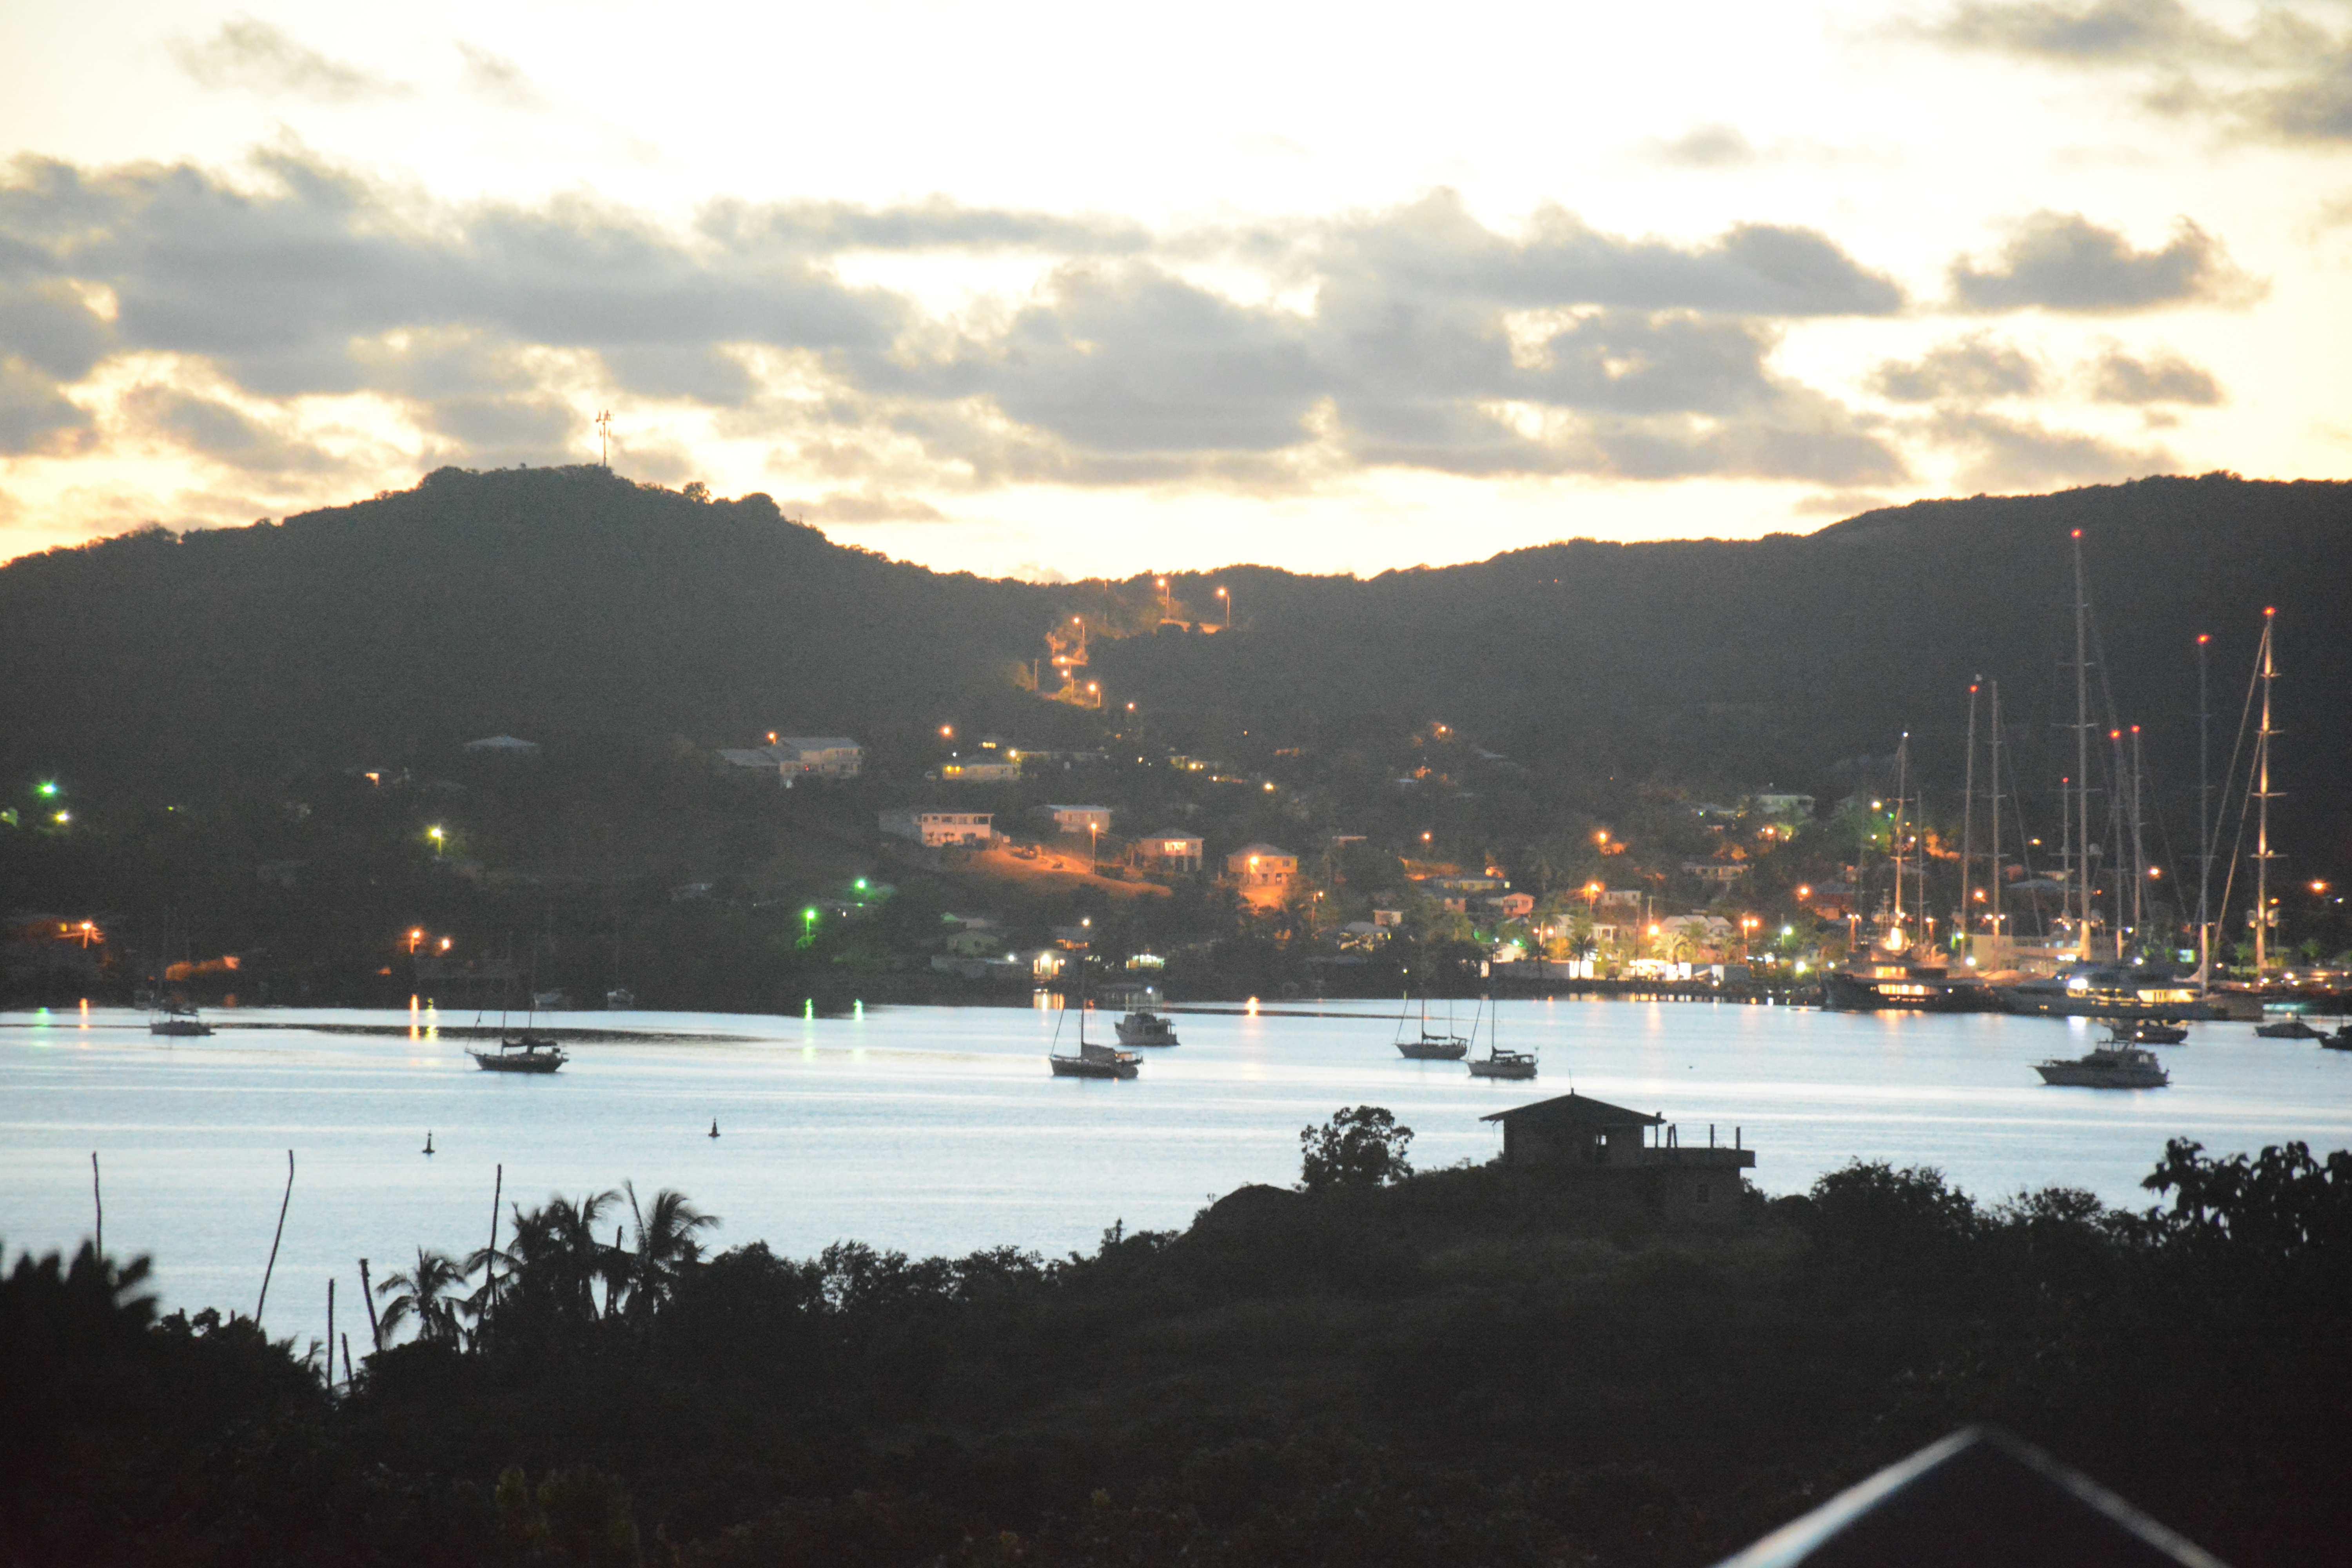 View of harbour at night with lights.